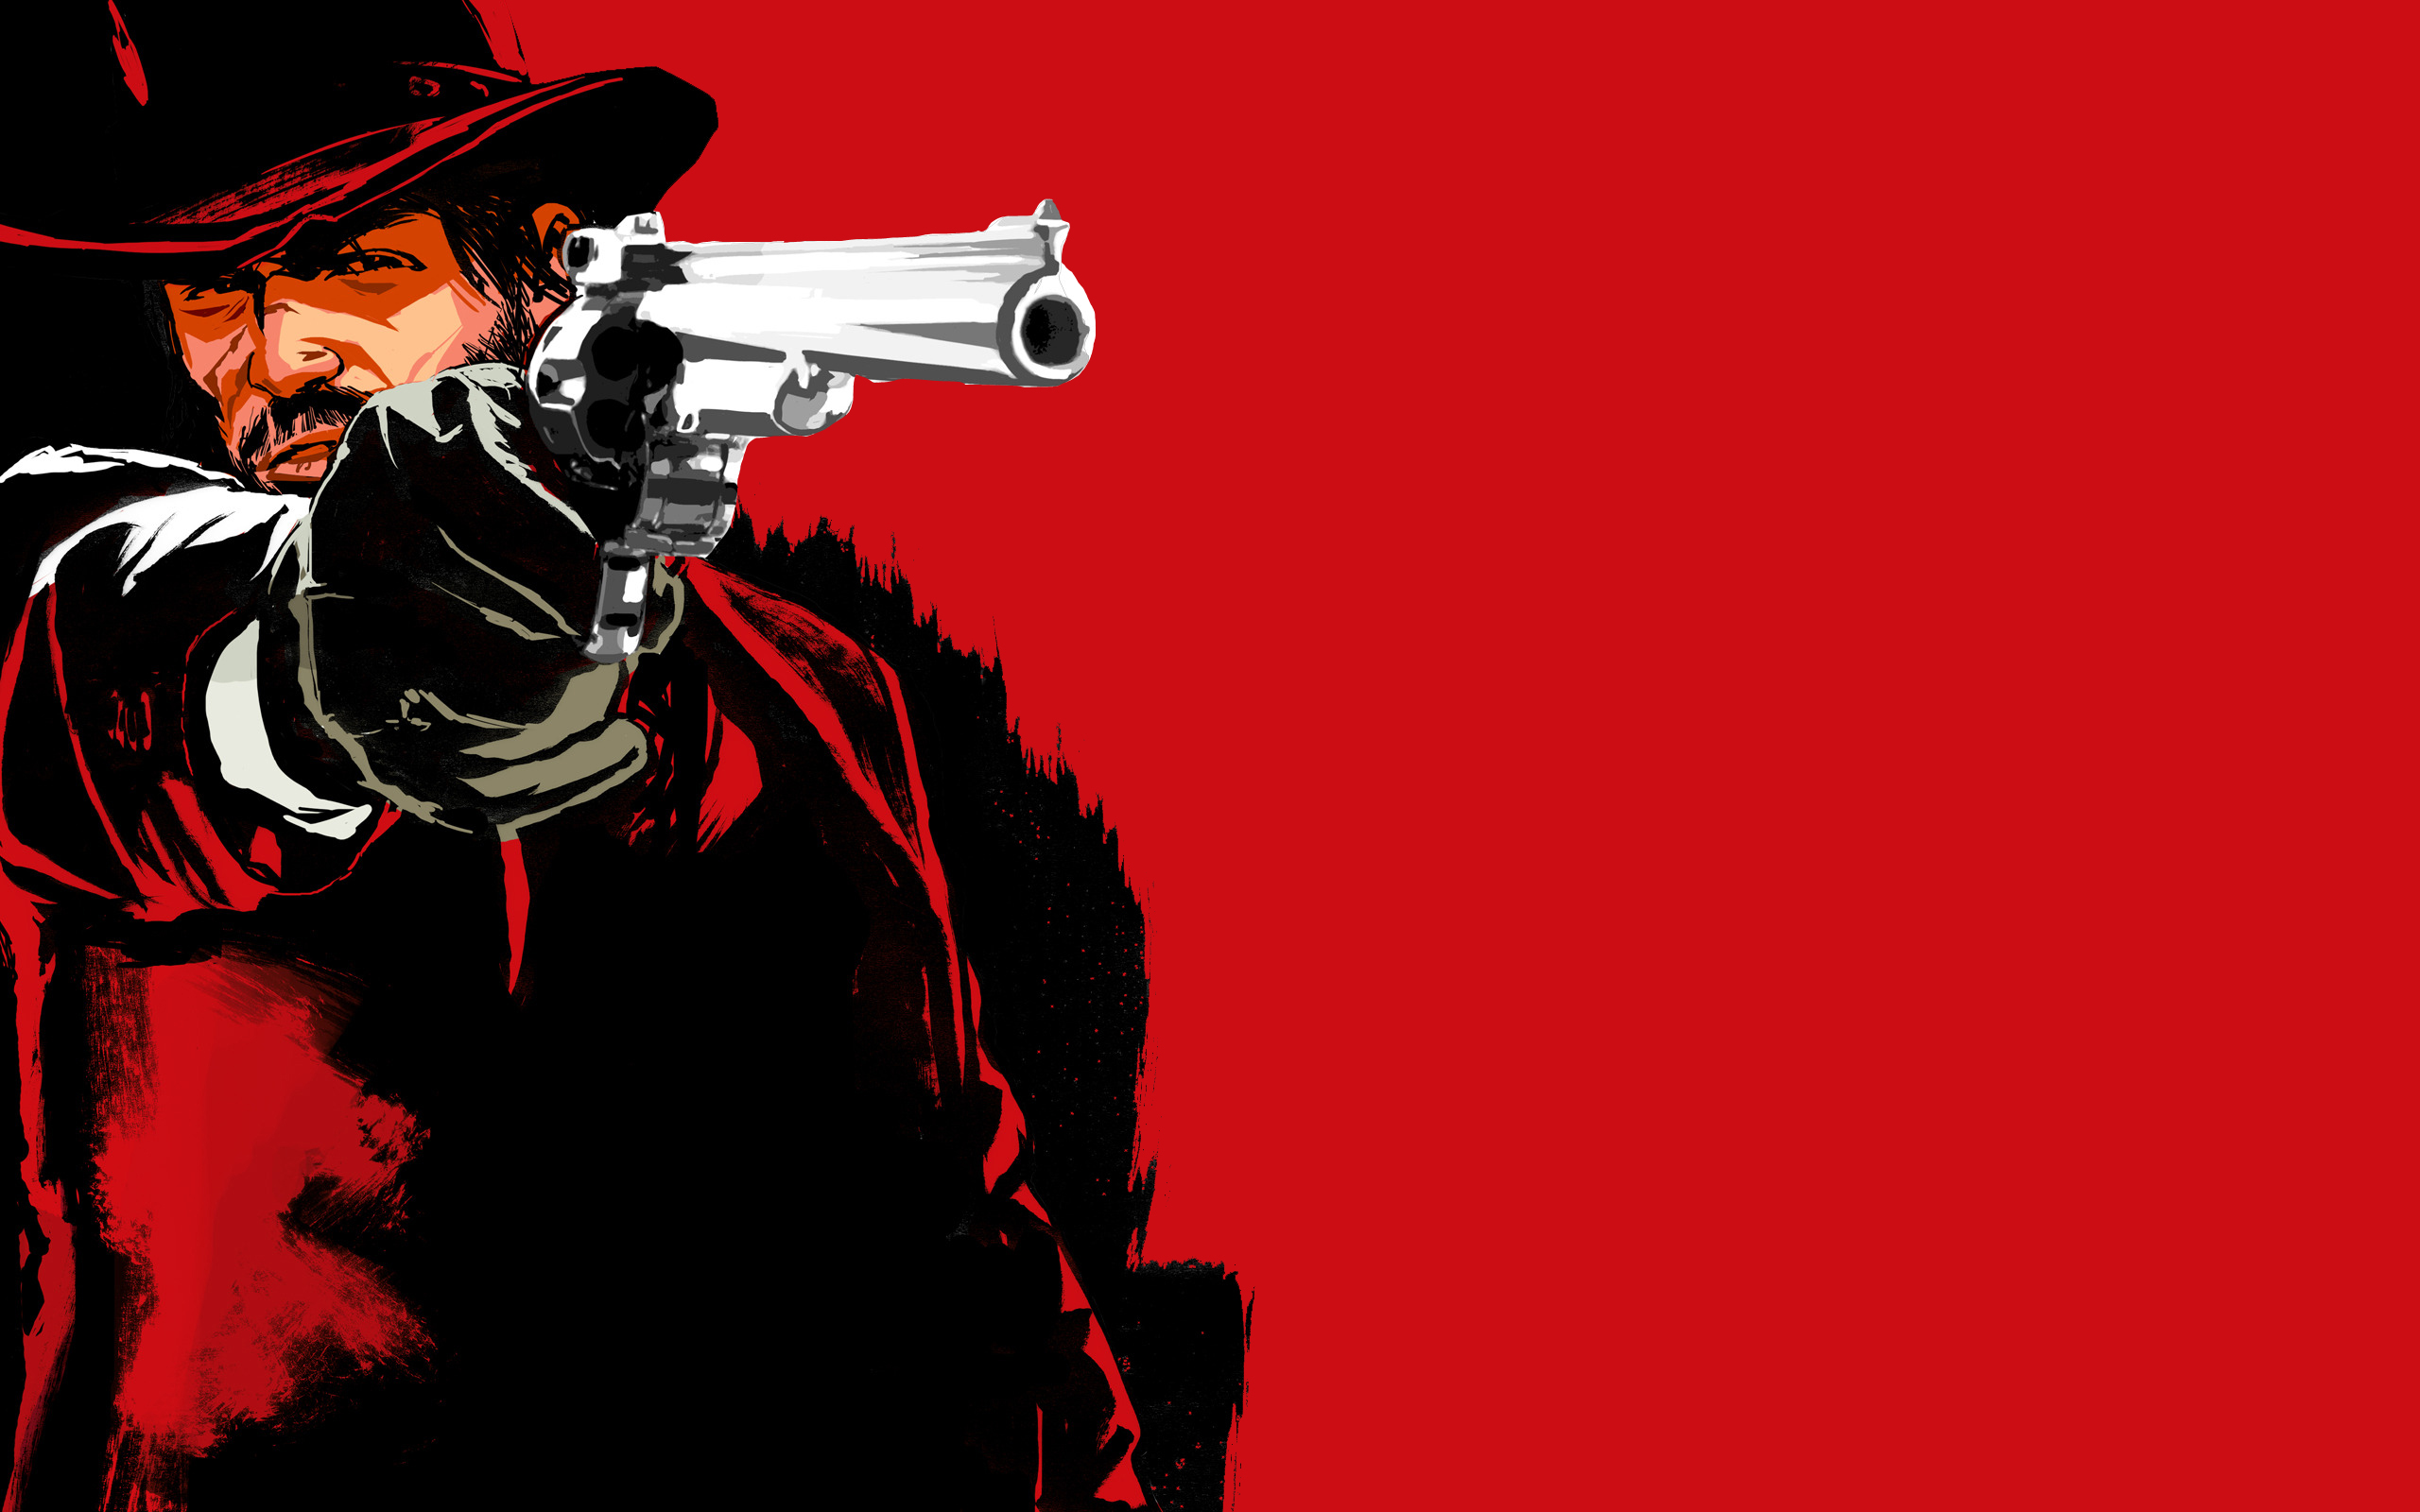 Red Dead Redemption Res: 2560x1600 / Size:983kb. Views: 34601